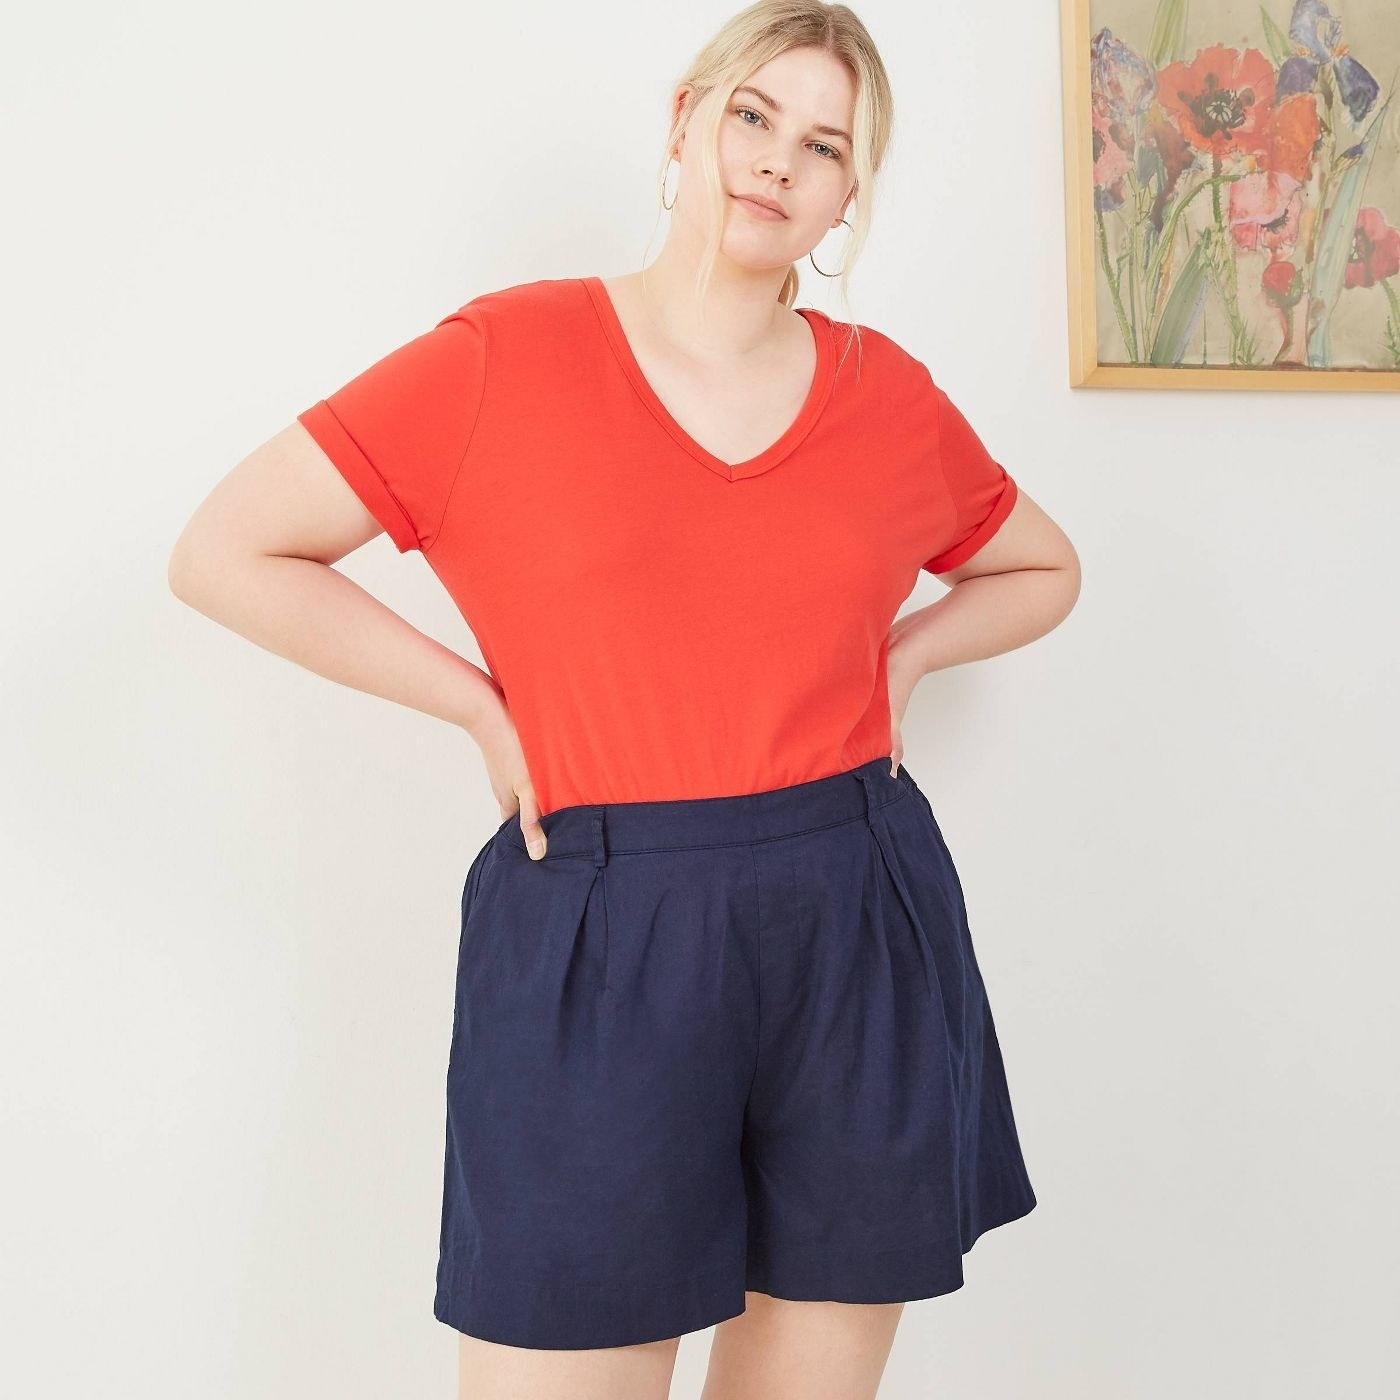 A model in high-waisted navy blue shorts